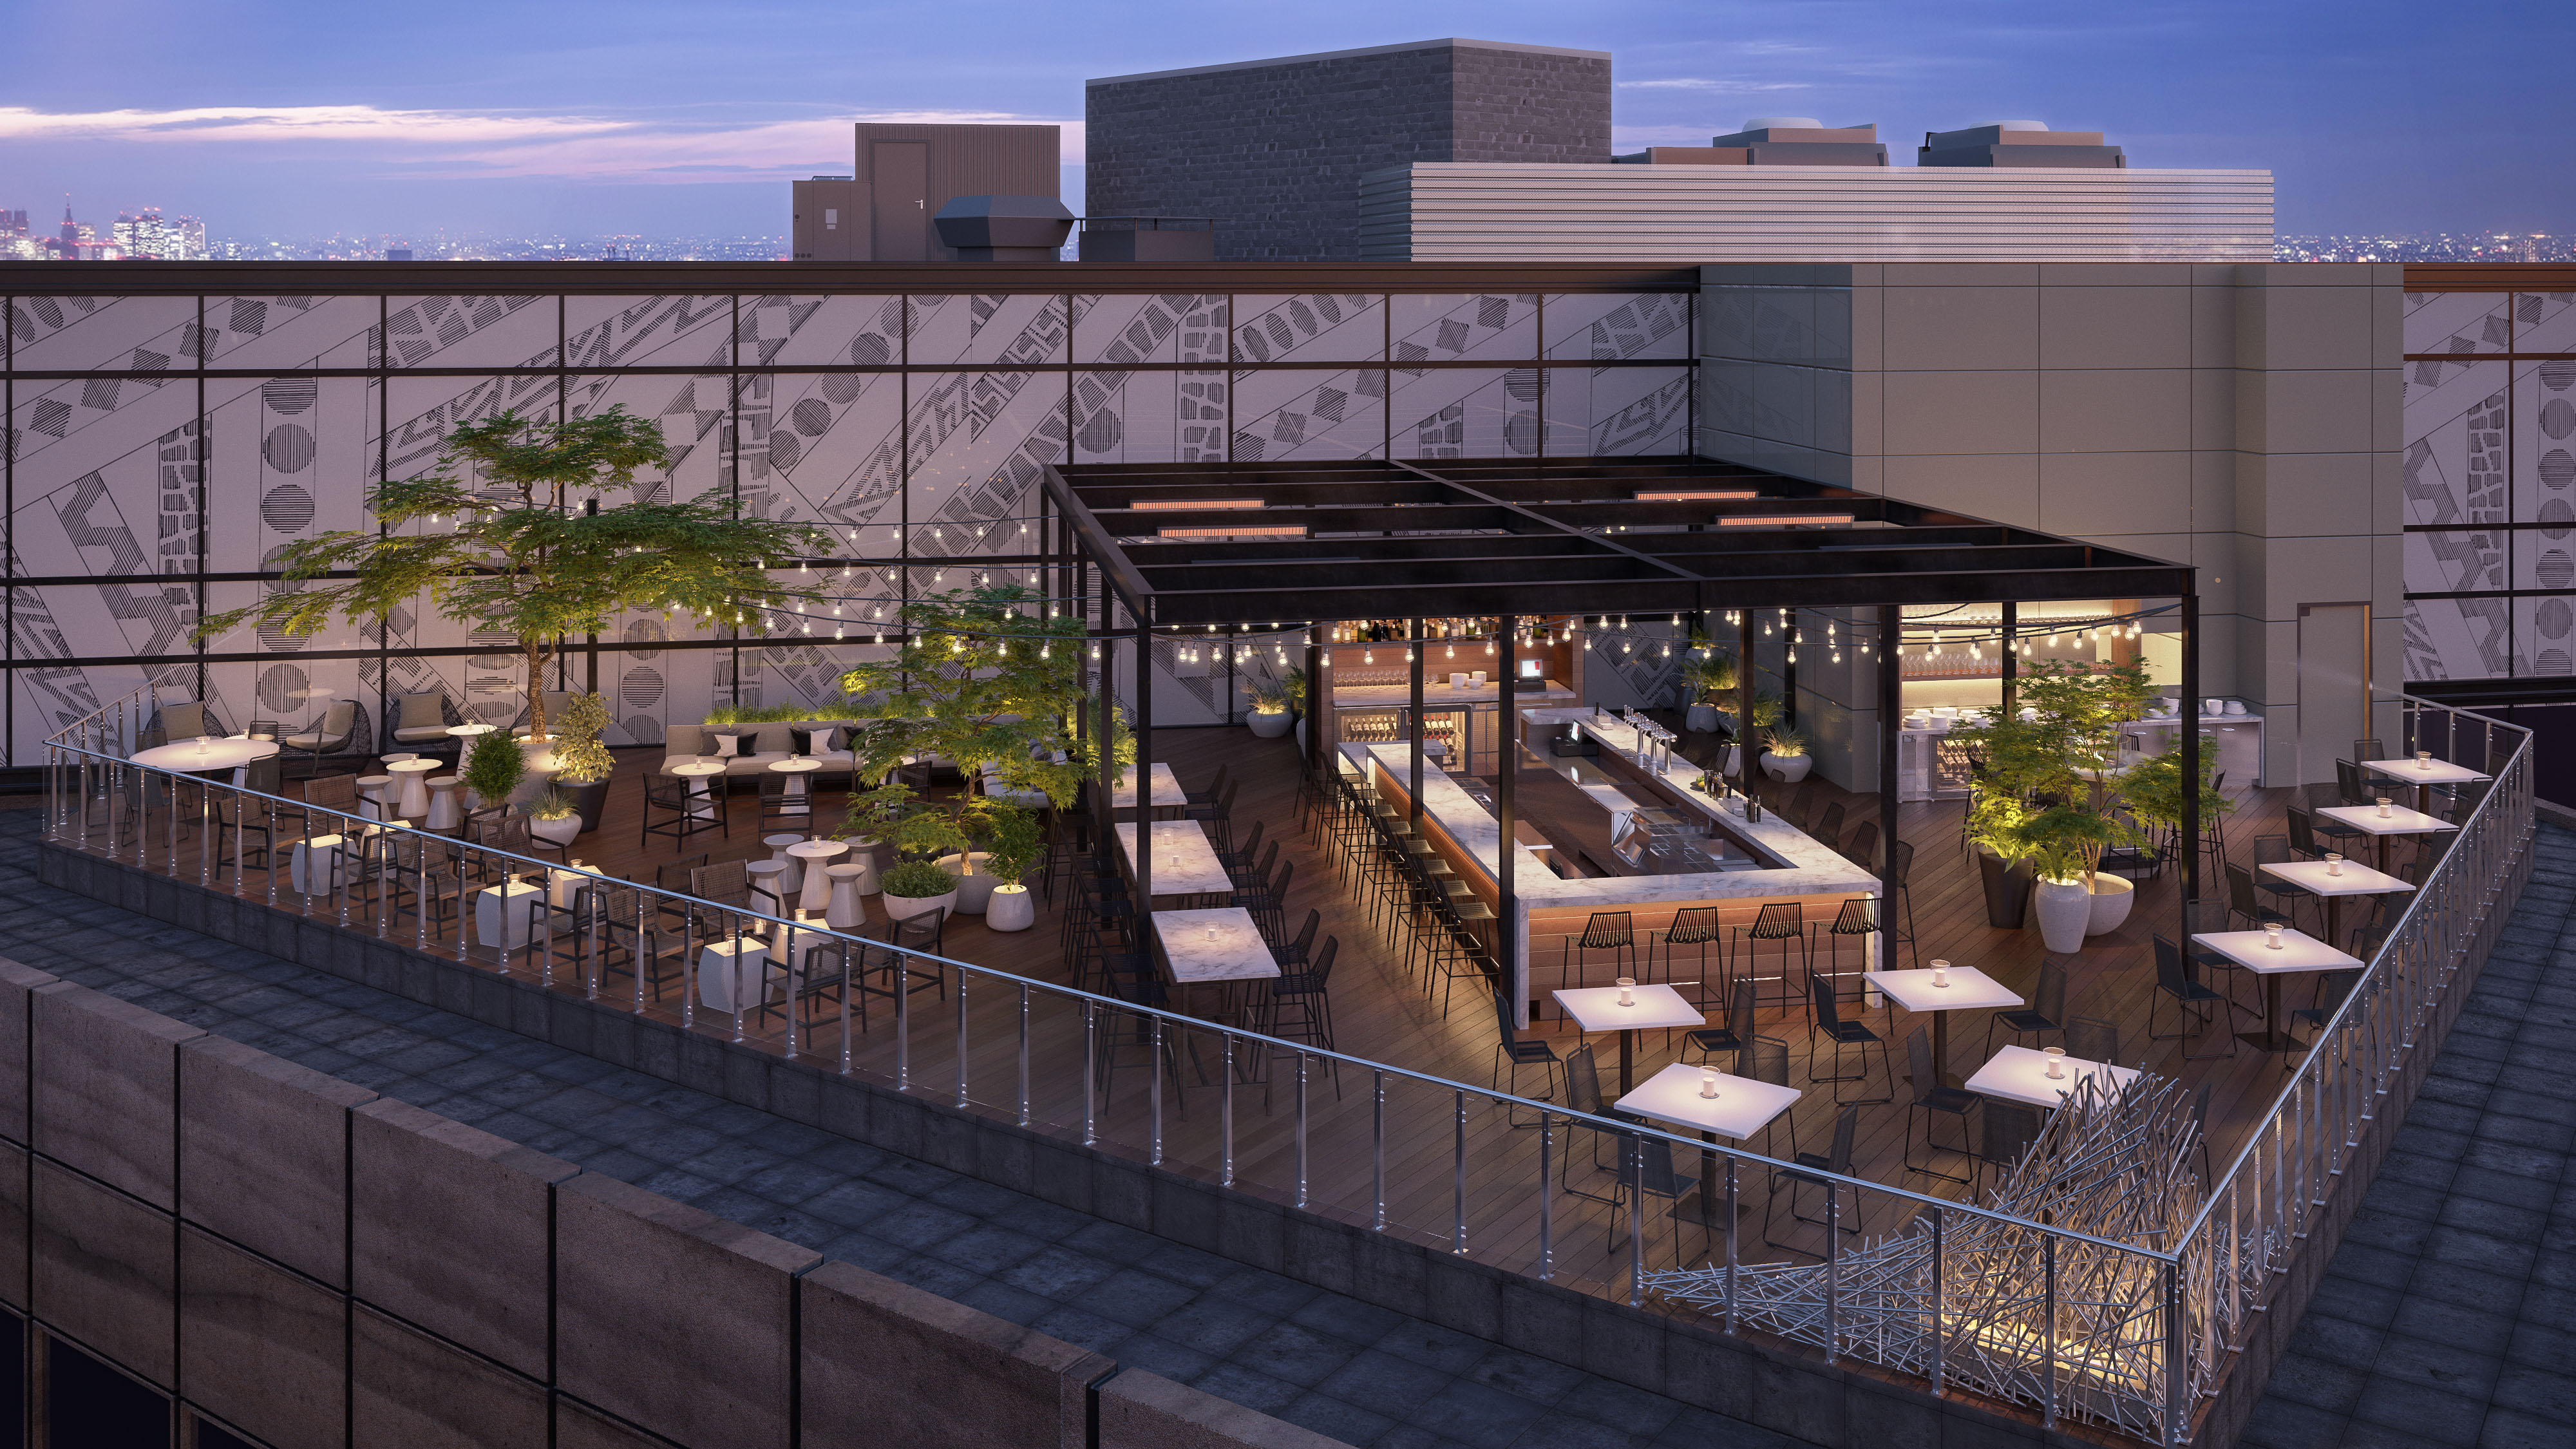 A rendering of Noyane, the Conrad Chicago hotel's new rooftop